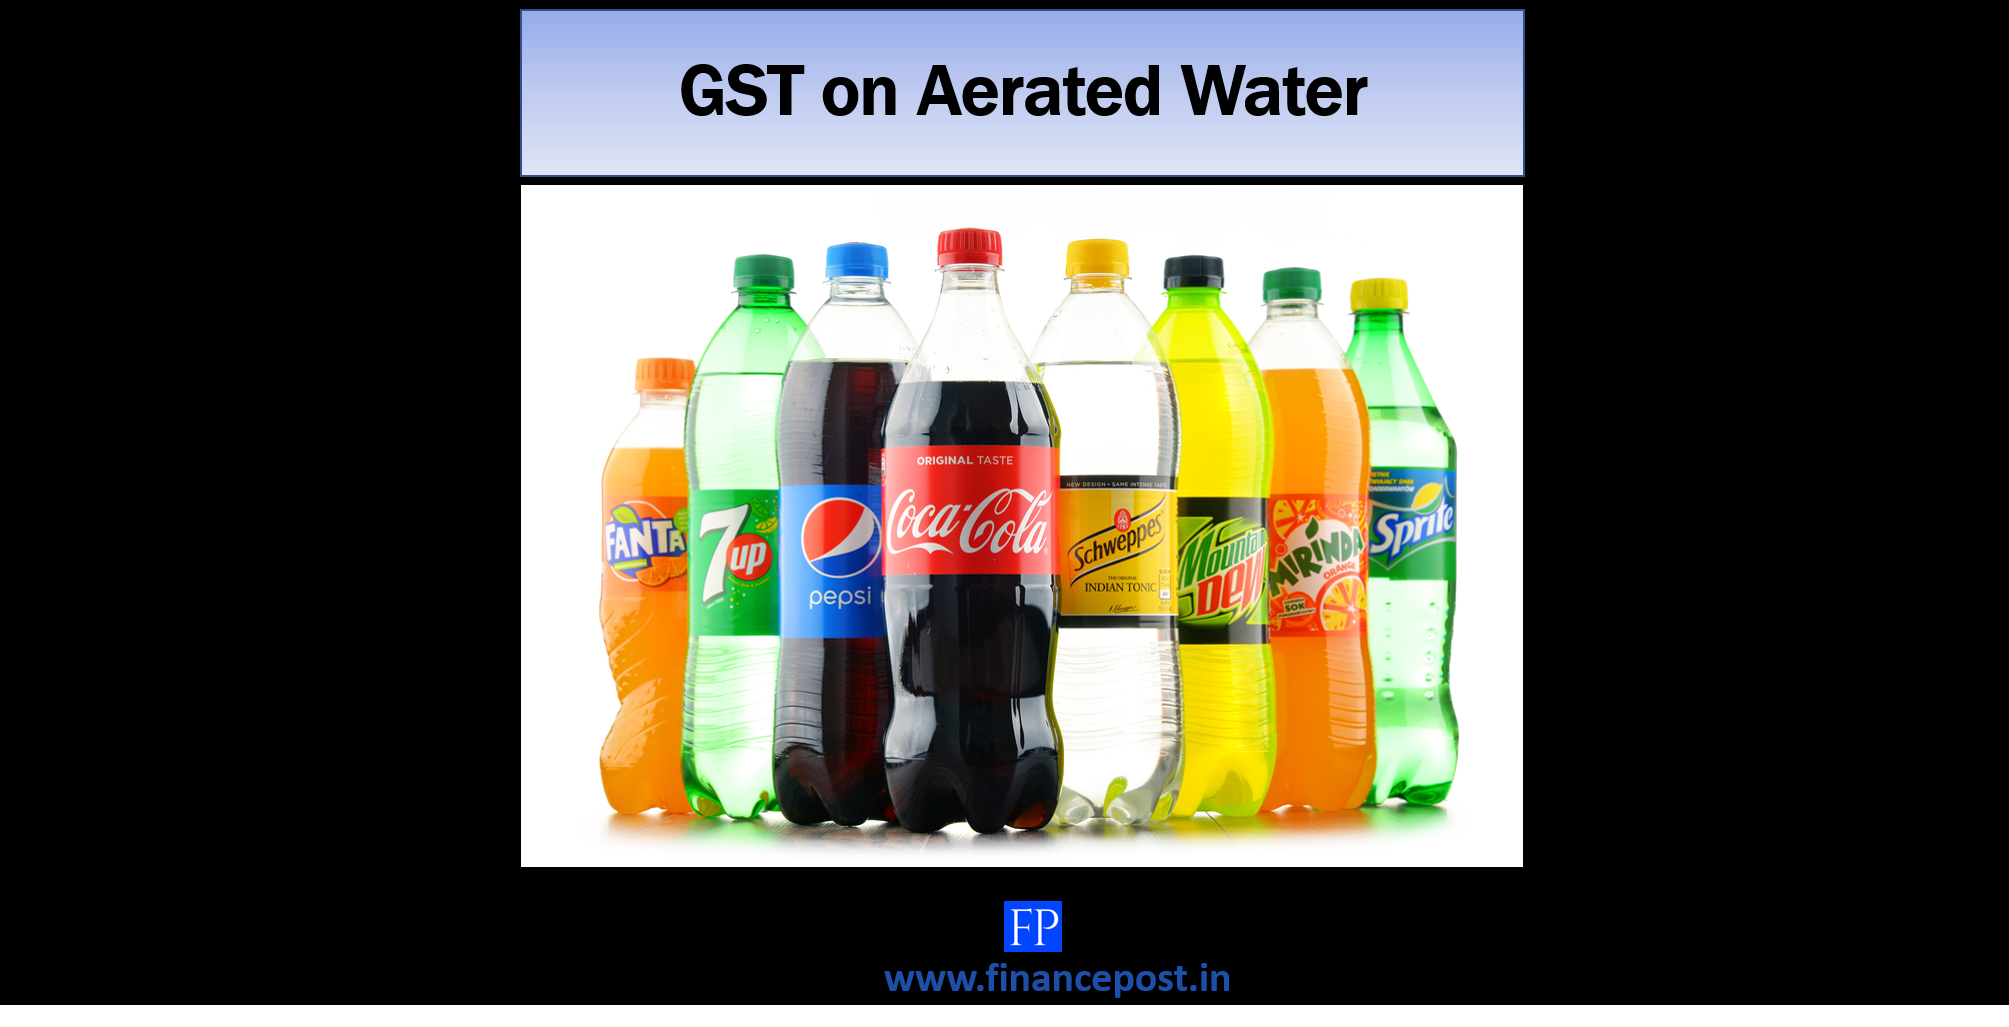 gst on aerated water